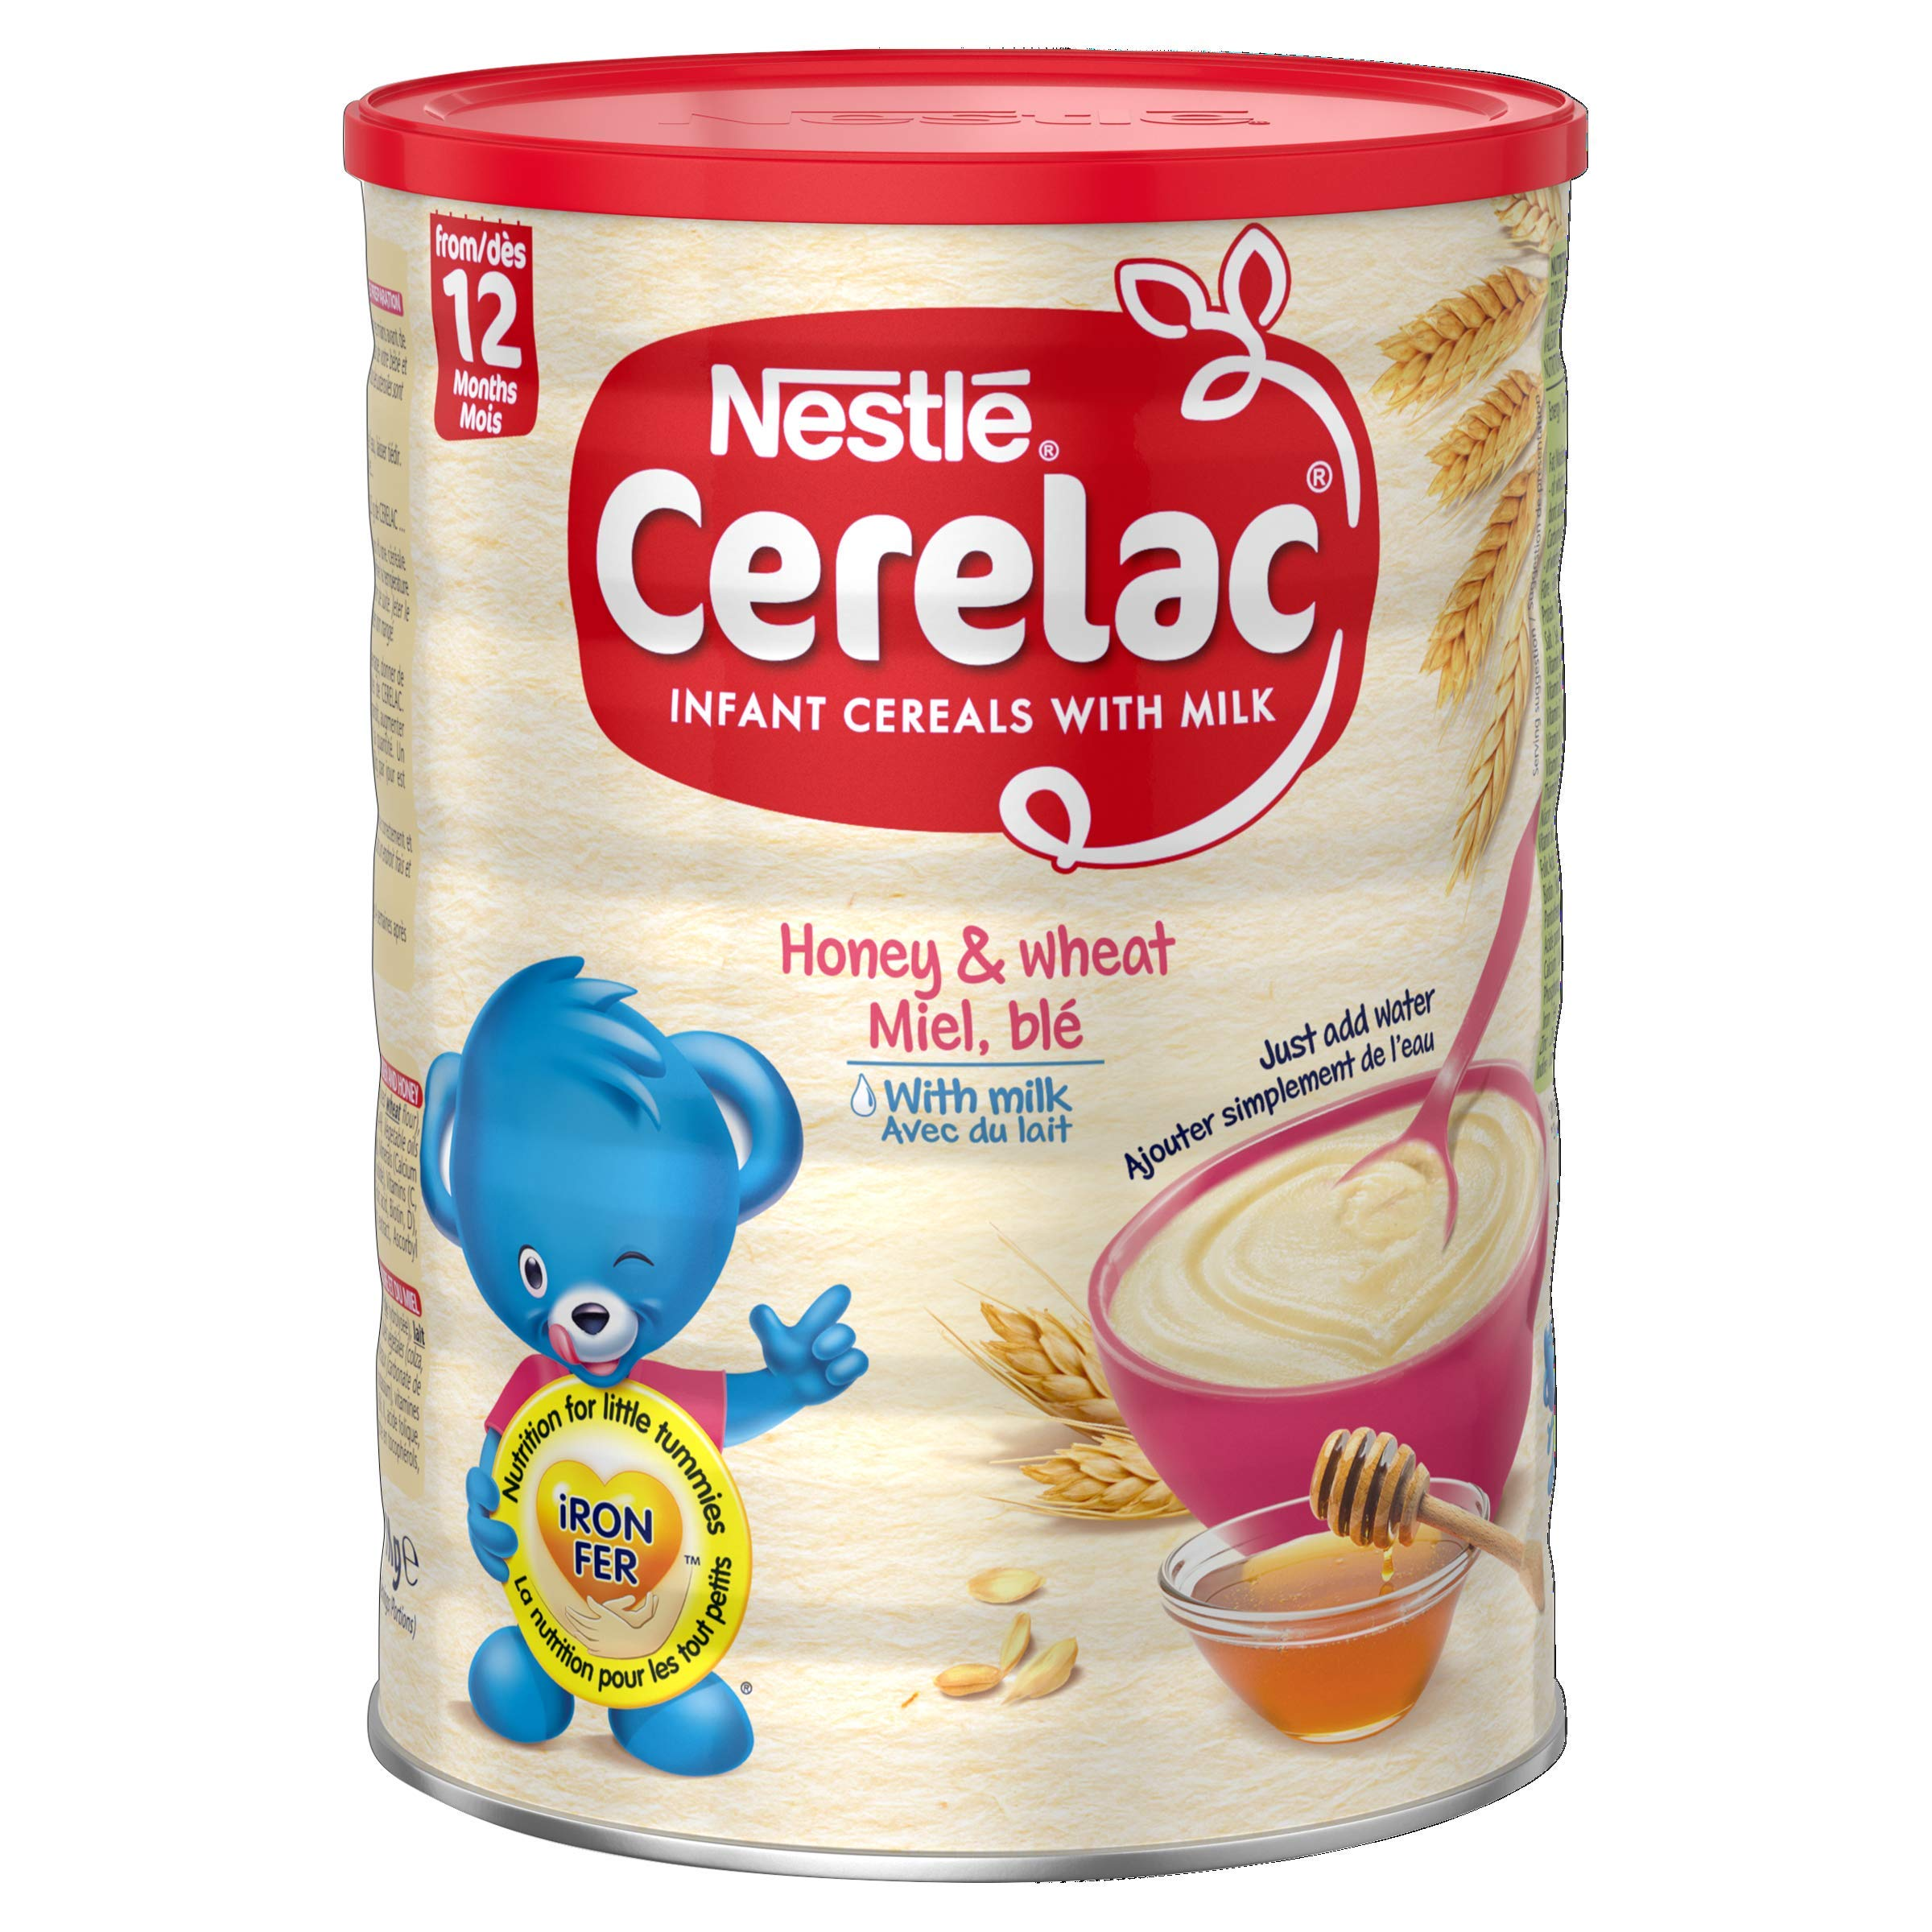 SMA Nutrition, Nestle Cerelac Wheat and Honey with Milk Infant Cereal 1 kg, 12 months+, Pack of 2